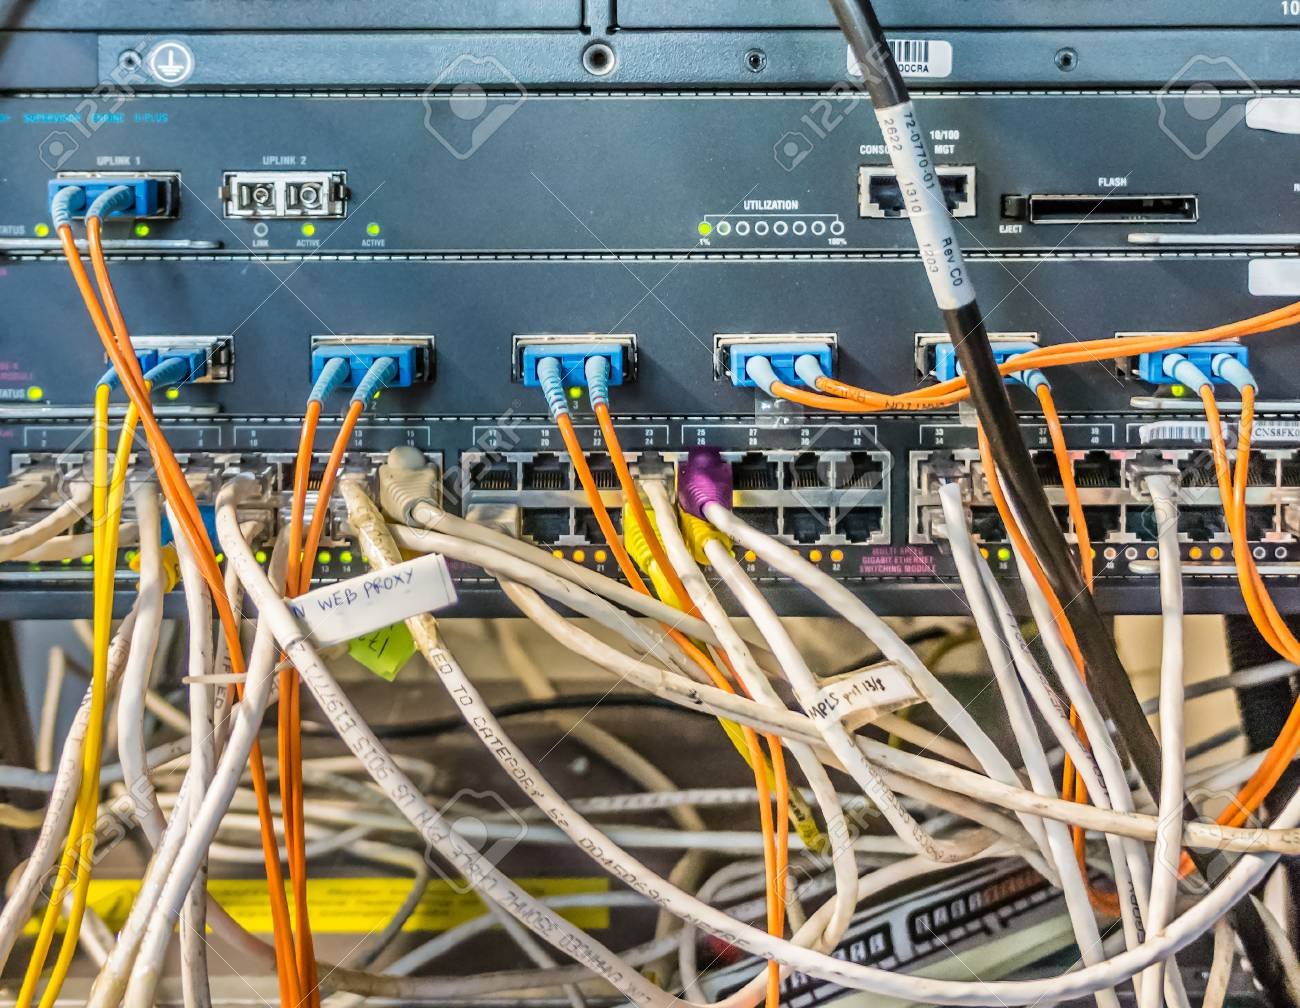 Surprising Messy Cables And Wires Unorganized Cabling In Server Room Stock Wiring 101 Mecadwellnesstrialsorg